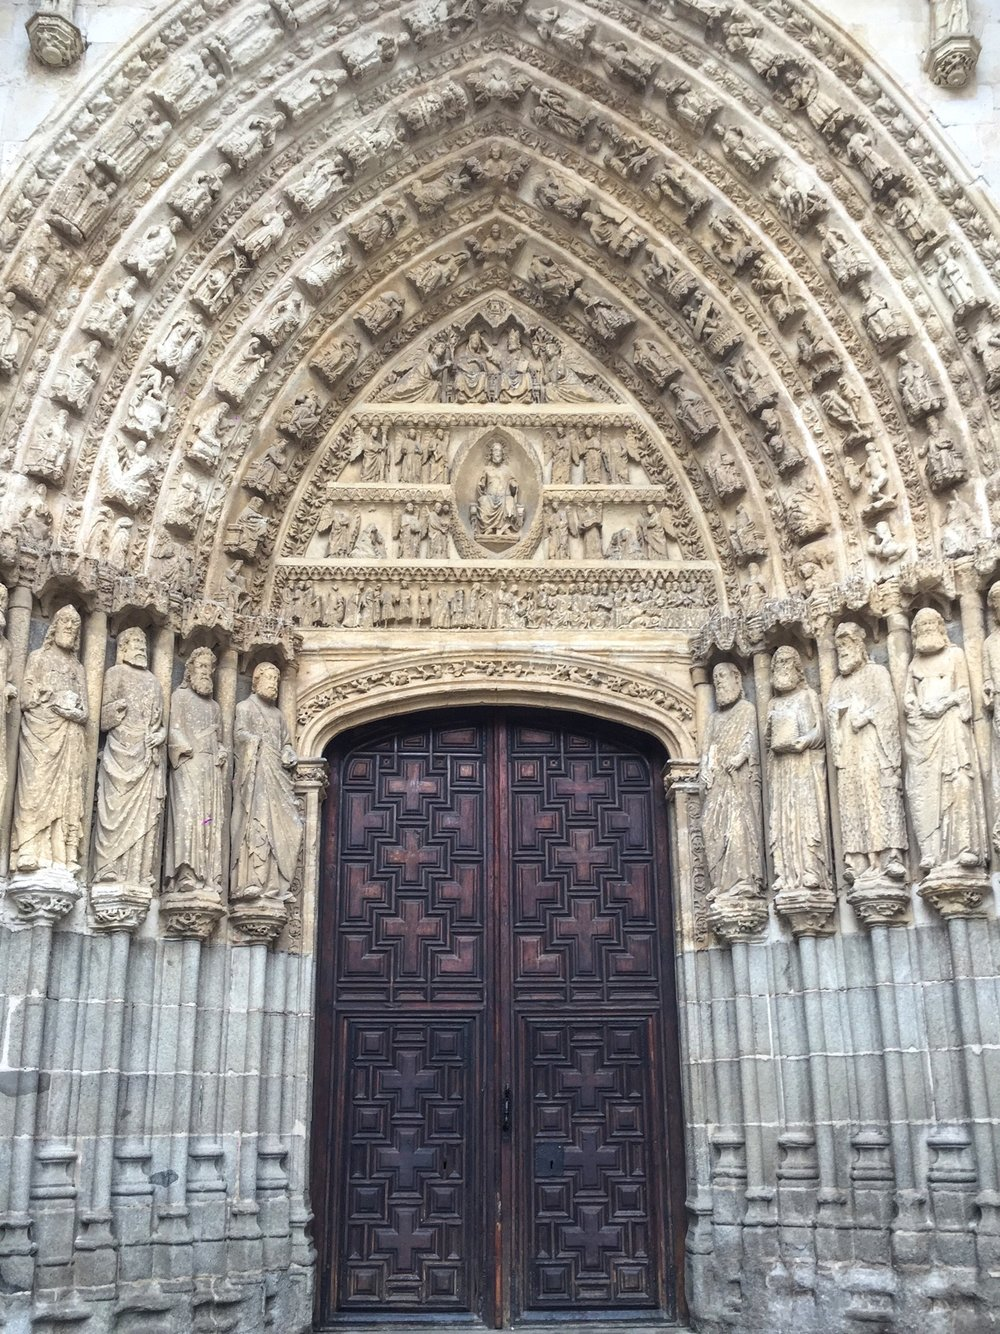 Facade of the cathedral